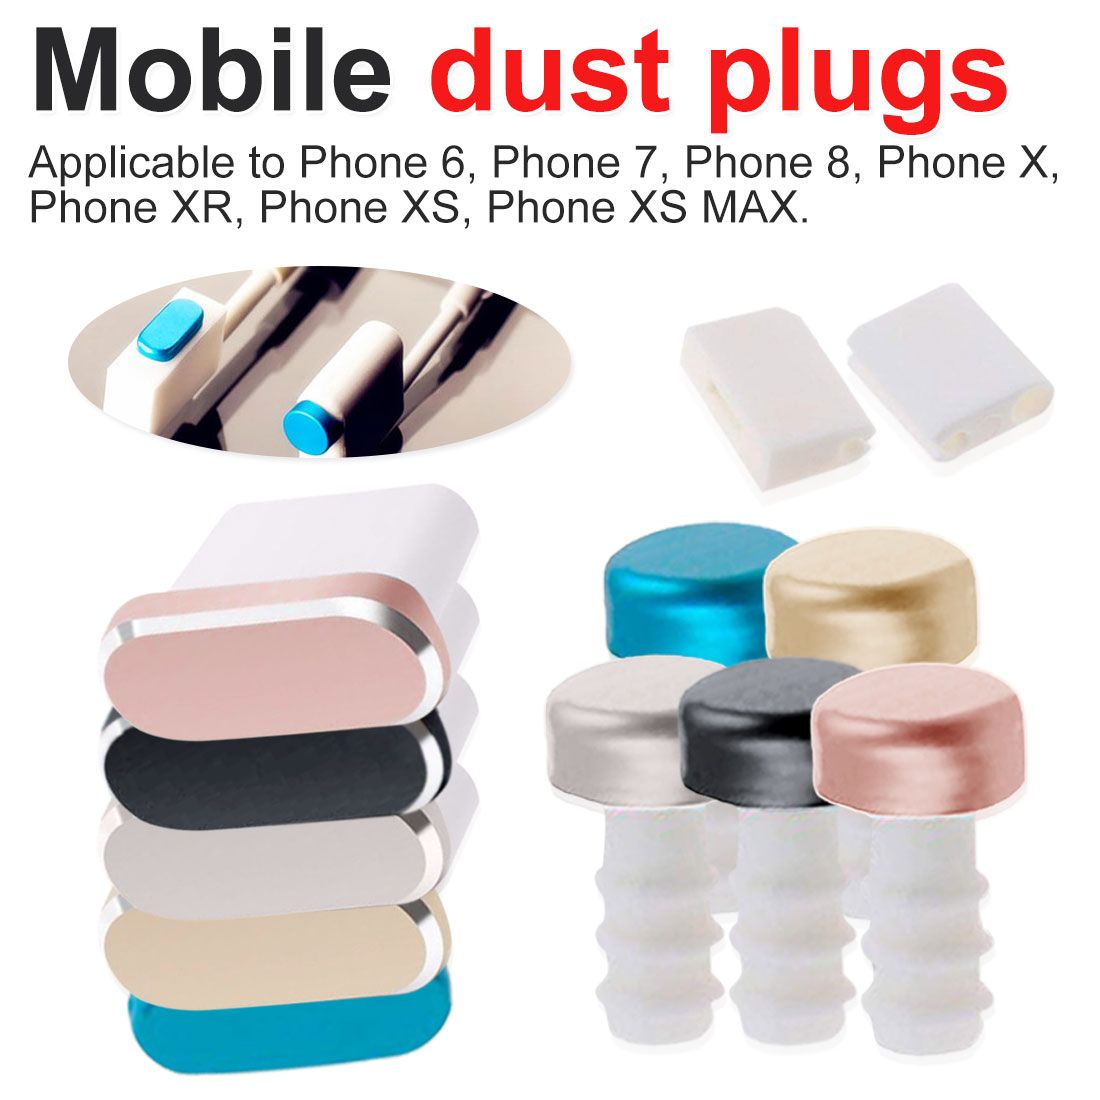 Metal Skin PC Charger Port Anti Dust Plug For IPhone 7 8 X 6S Plus Cap Stopper Cover Phone Accessories Universal Charging Plug